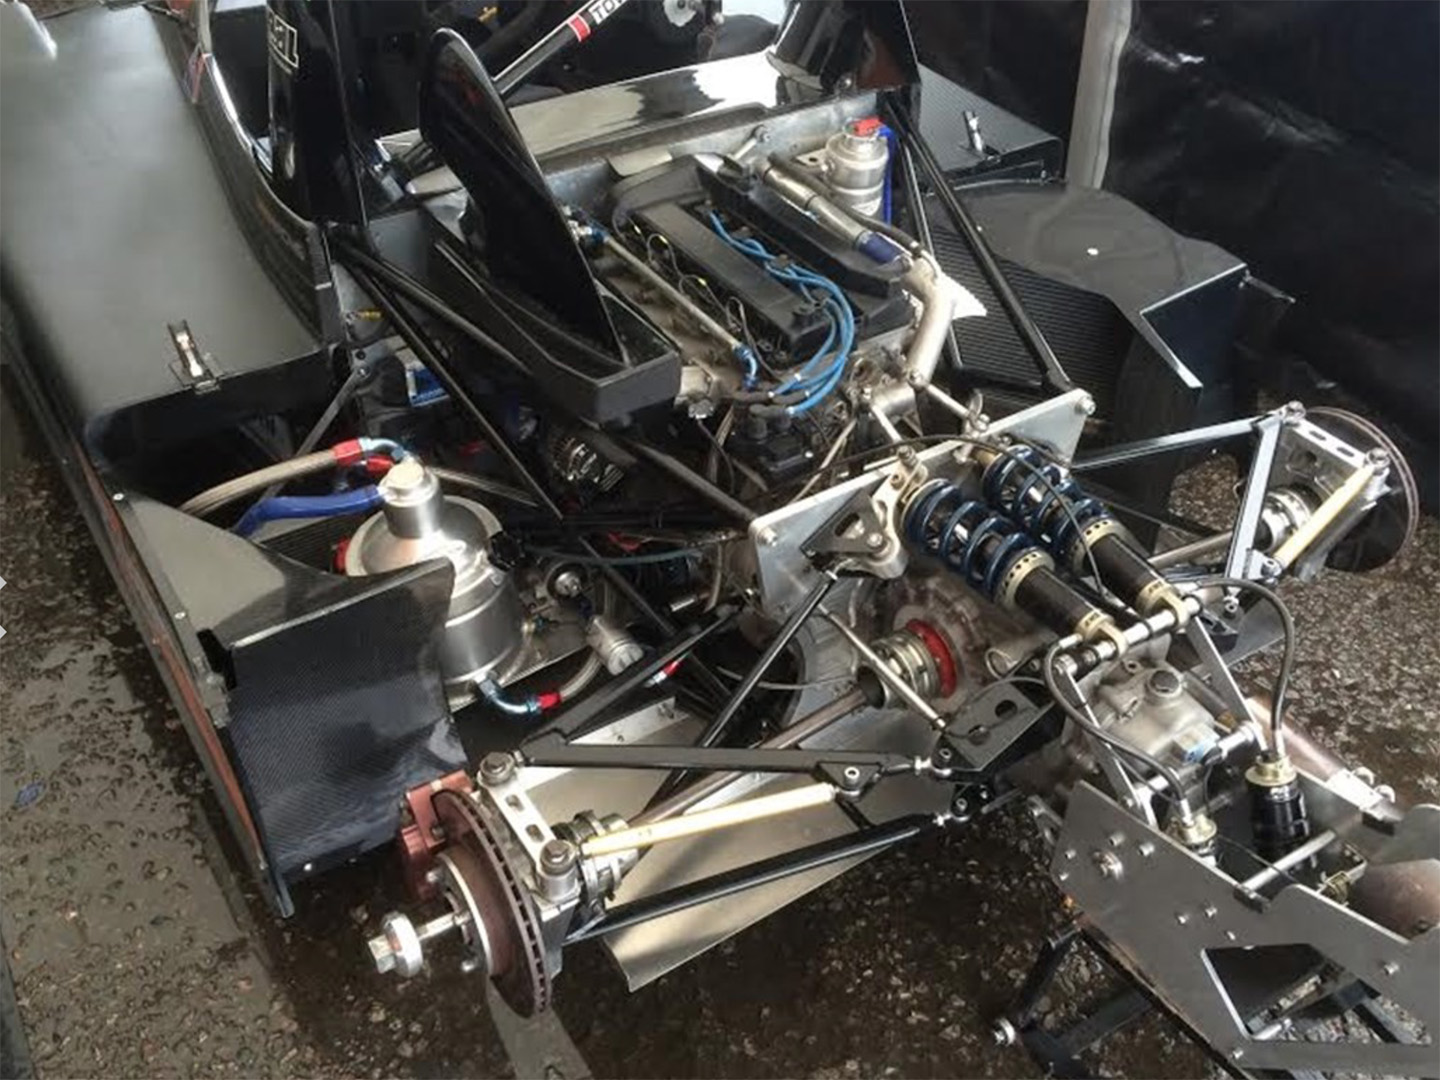 MCR race cars for sale Sports 2000 OSS spec race engines